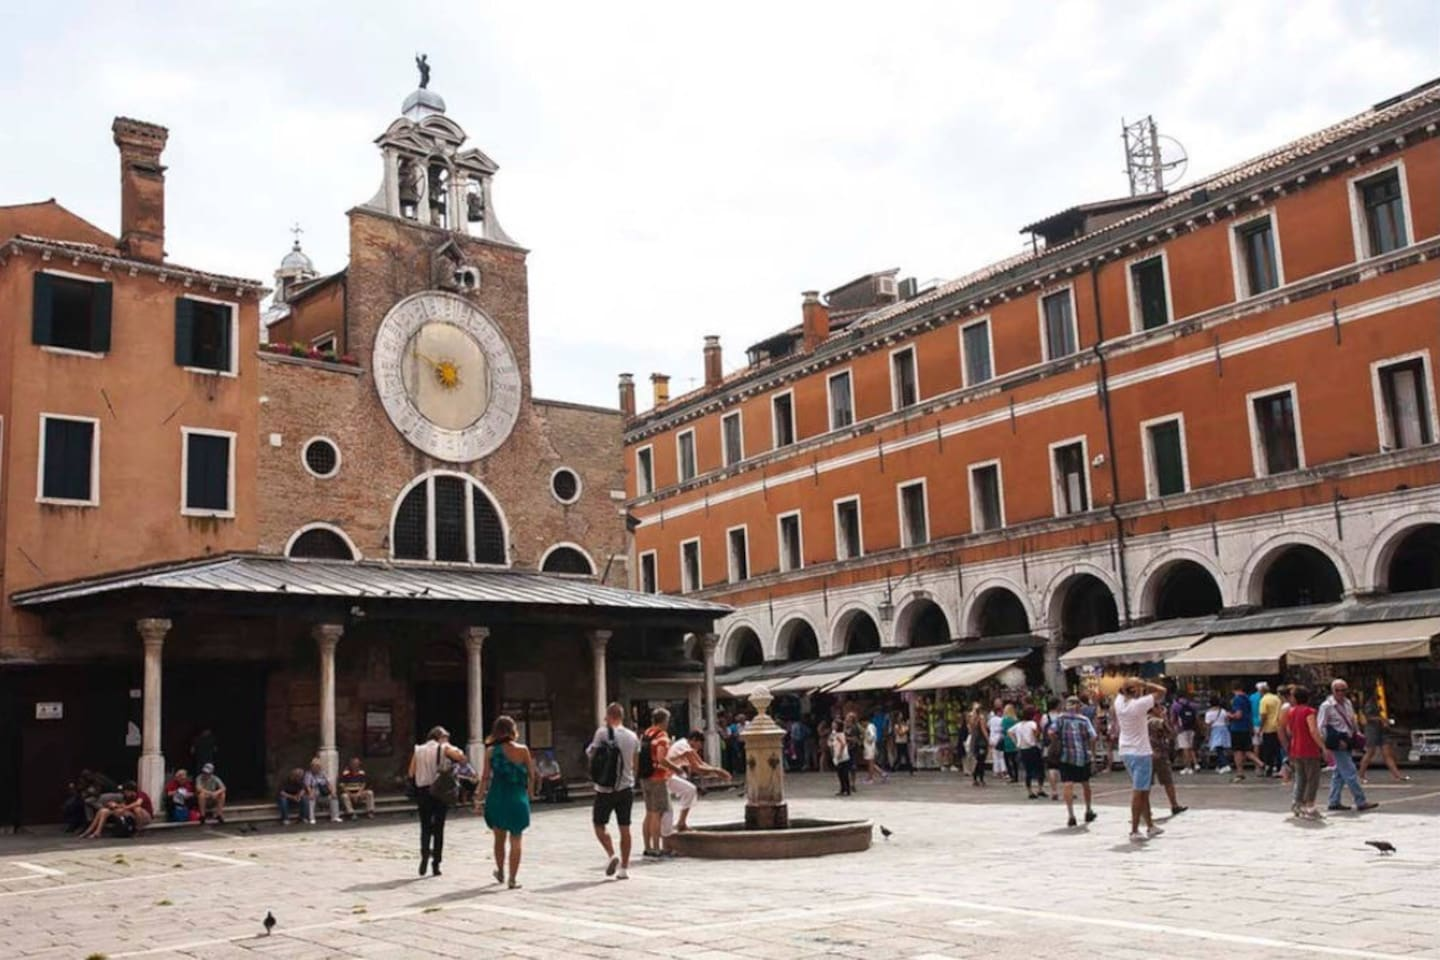 Located on the square on Rialto, between the Rialto Bridge and the famous Rialto fish market!